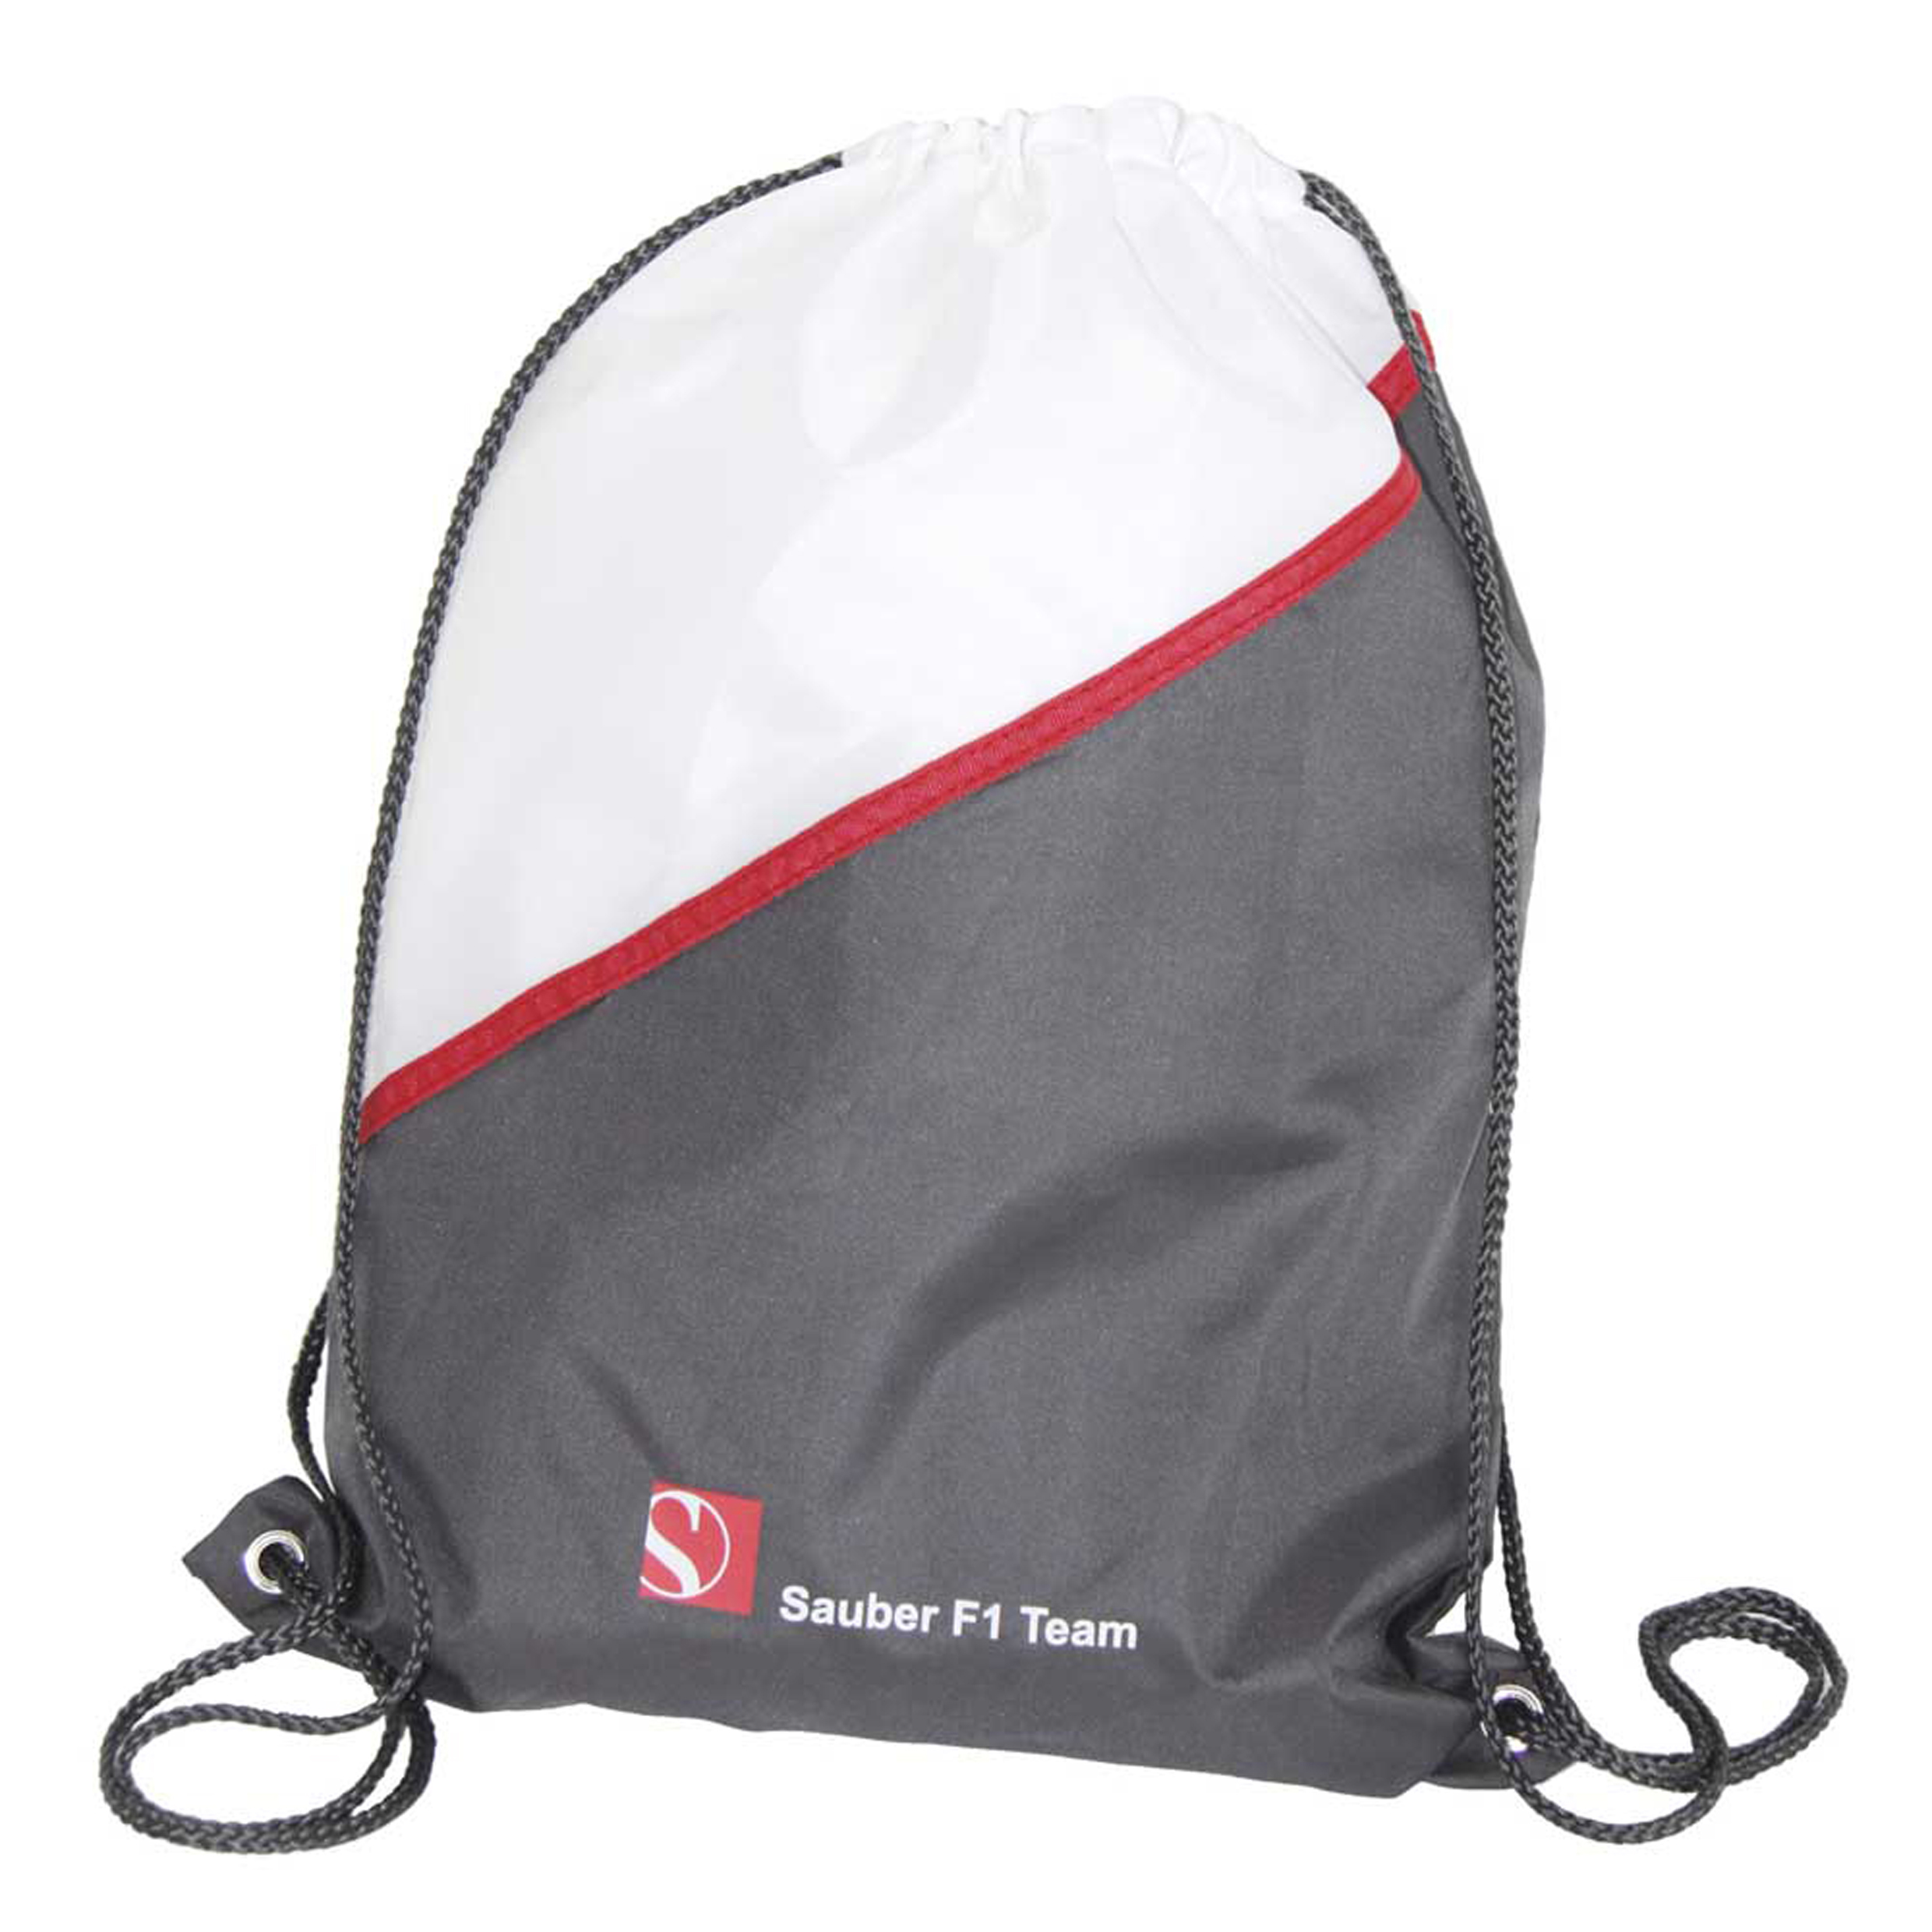 SAUBER F1 Team String Bag